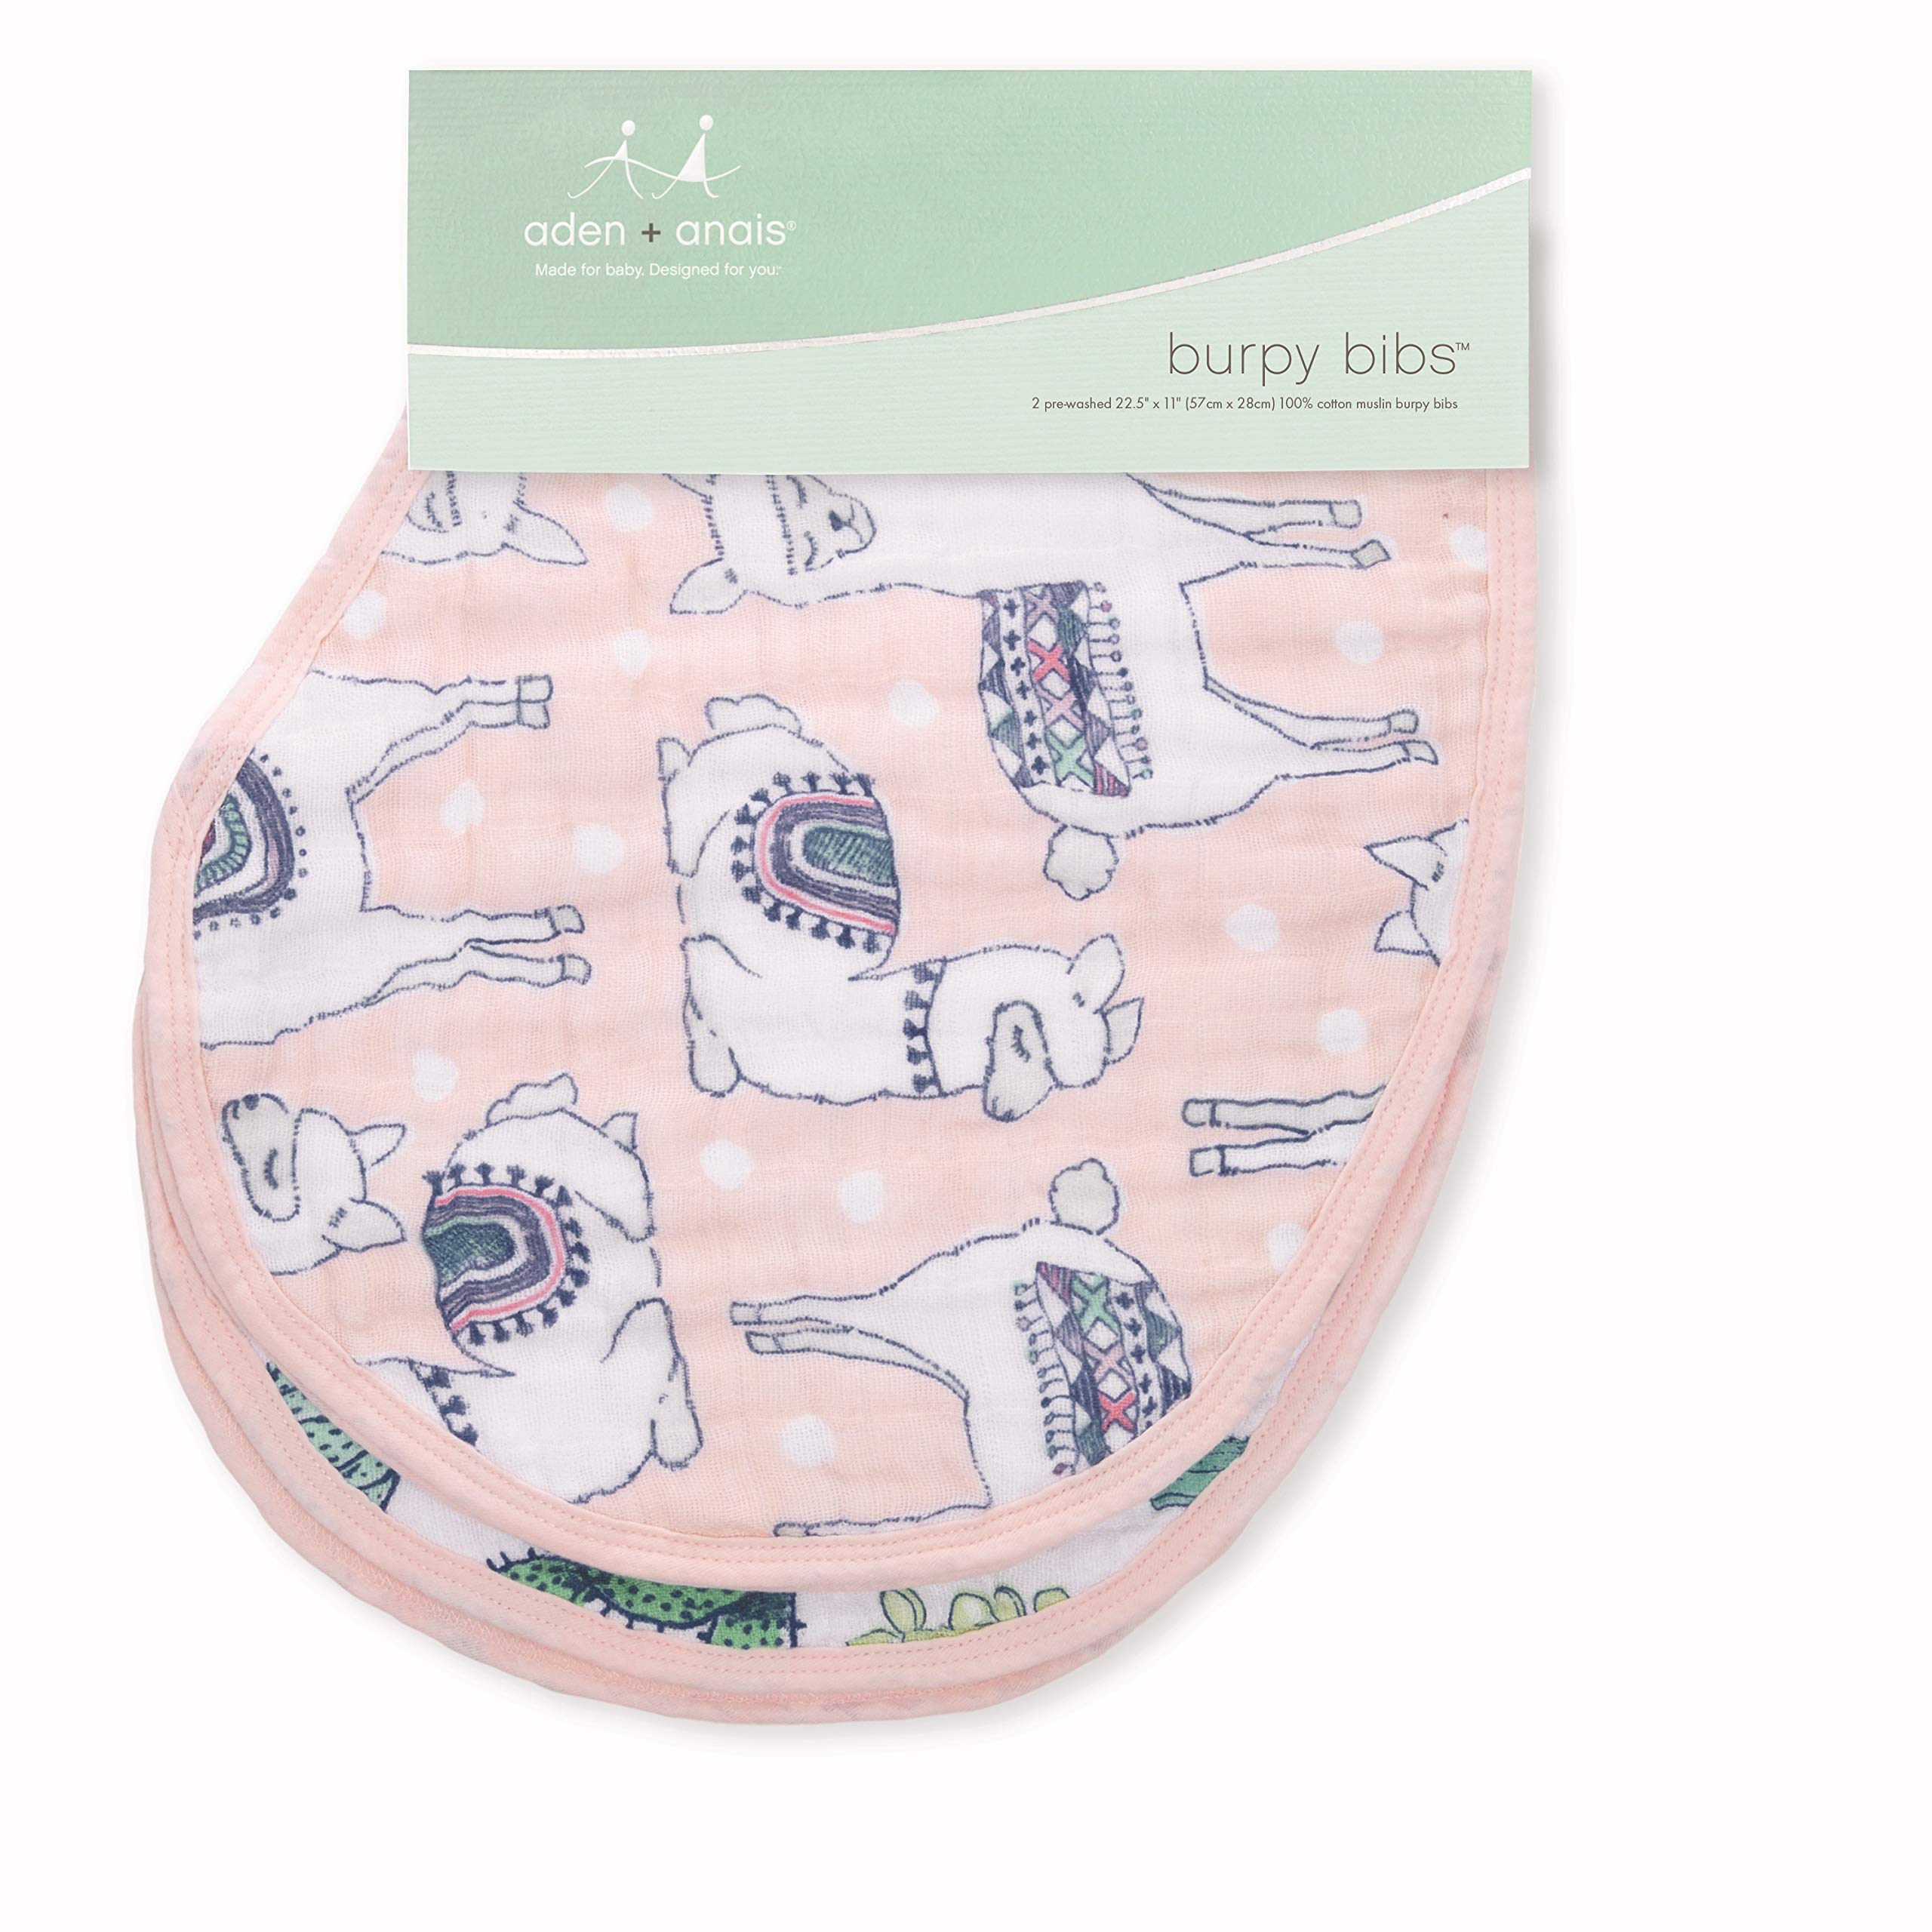 """aden + anais Classic Burpy Bib; 100% Cotton Muslin; Soft Absorbent 4 Layers; Multi-Use Burp Cloth and Bib; 22.5"""" X 11""""; Trail Blooms; 2 - Pack"""